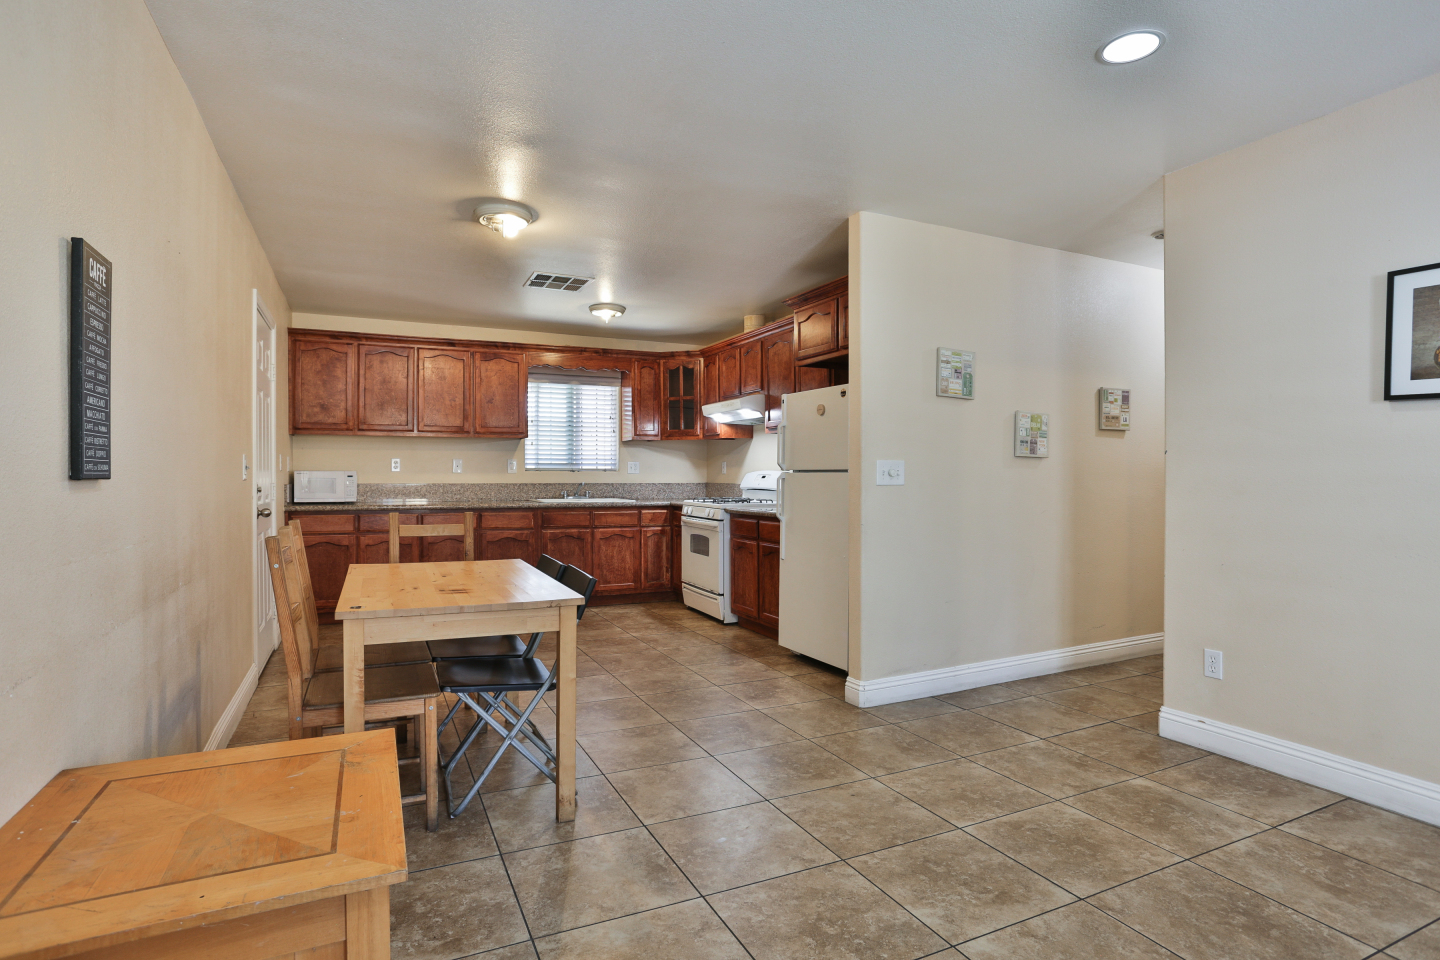 huge kitchen and dining area, granite floors, brown Cabinets